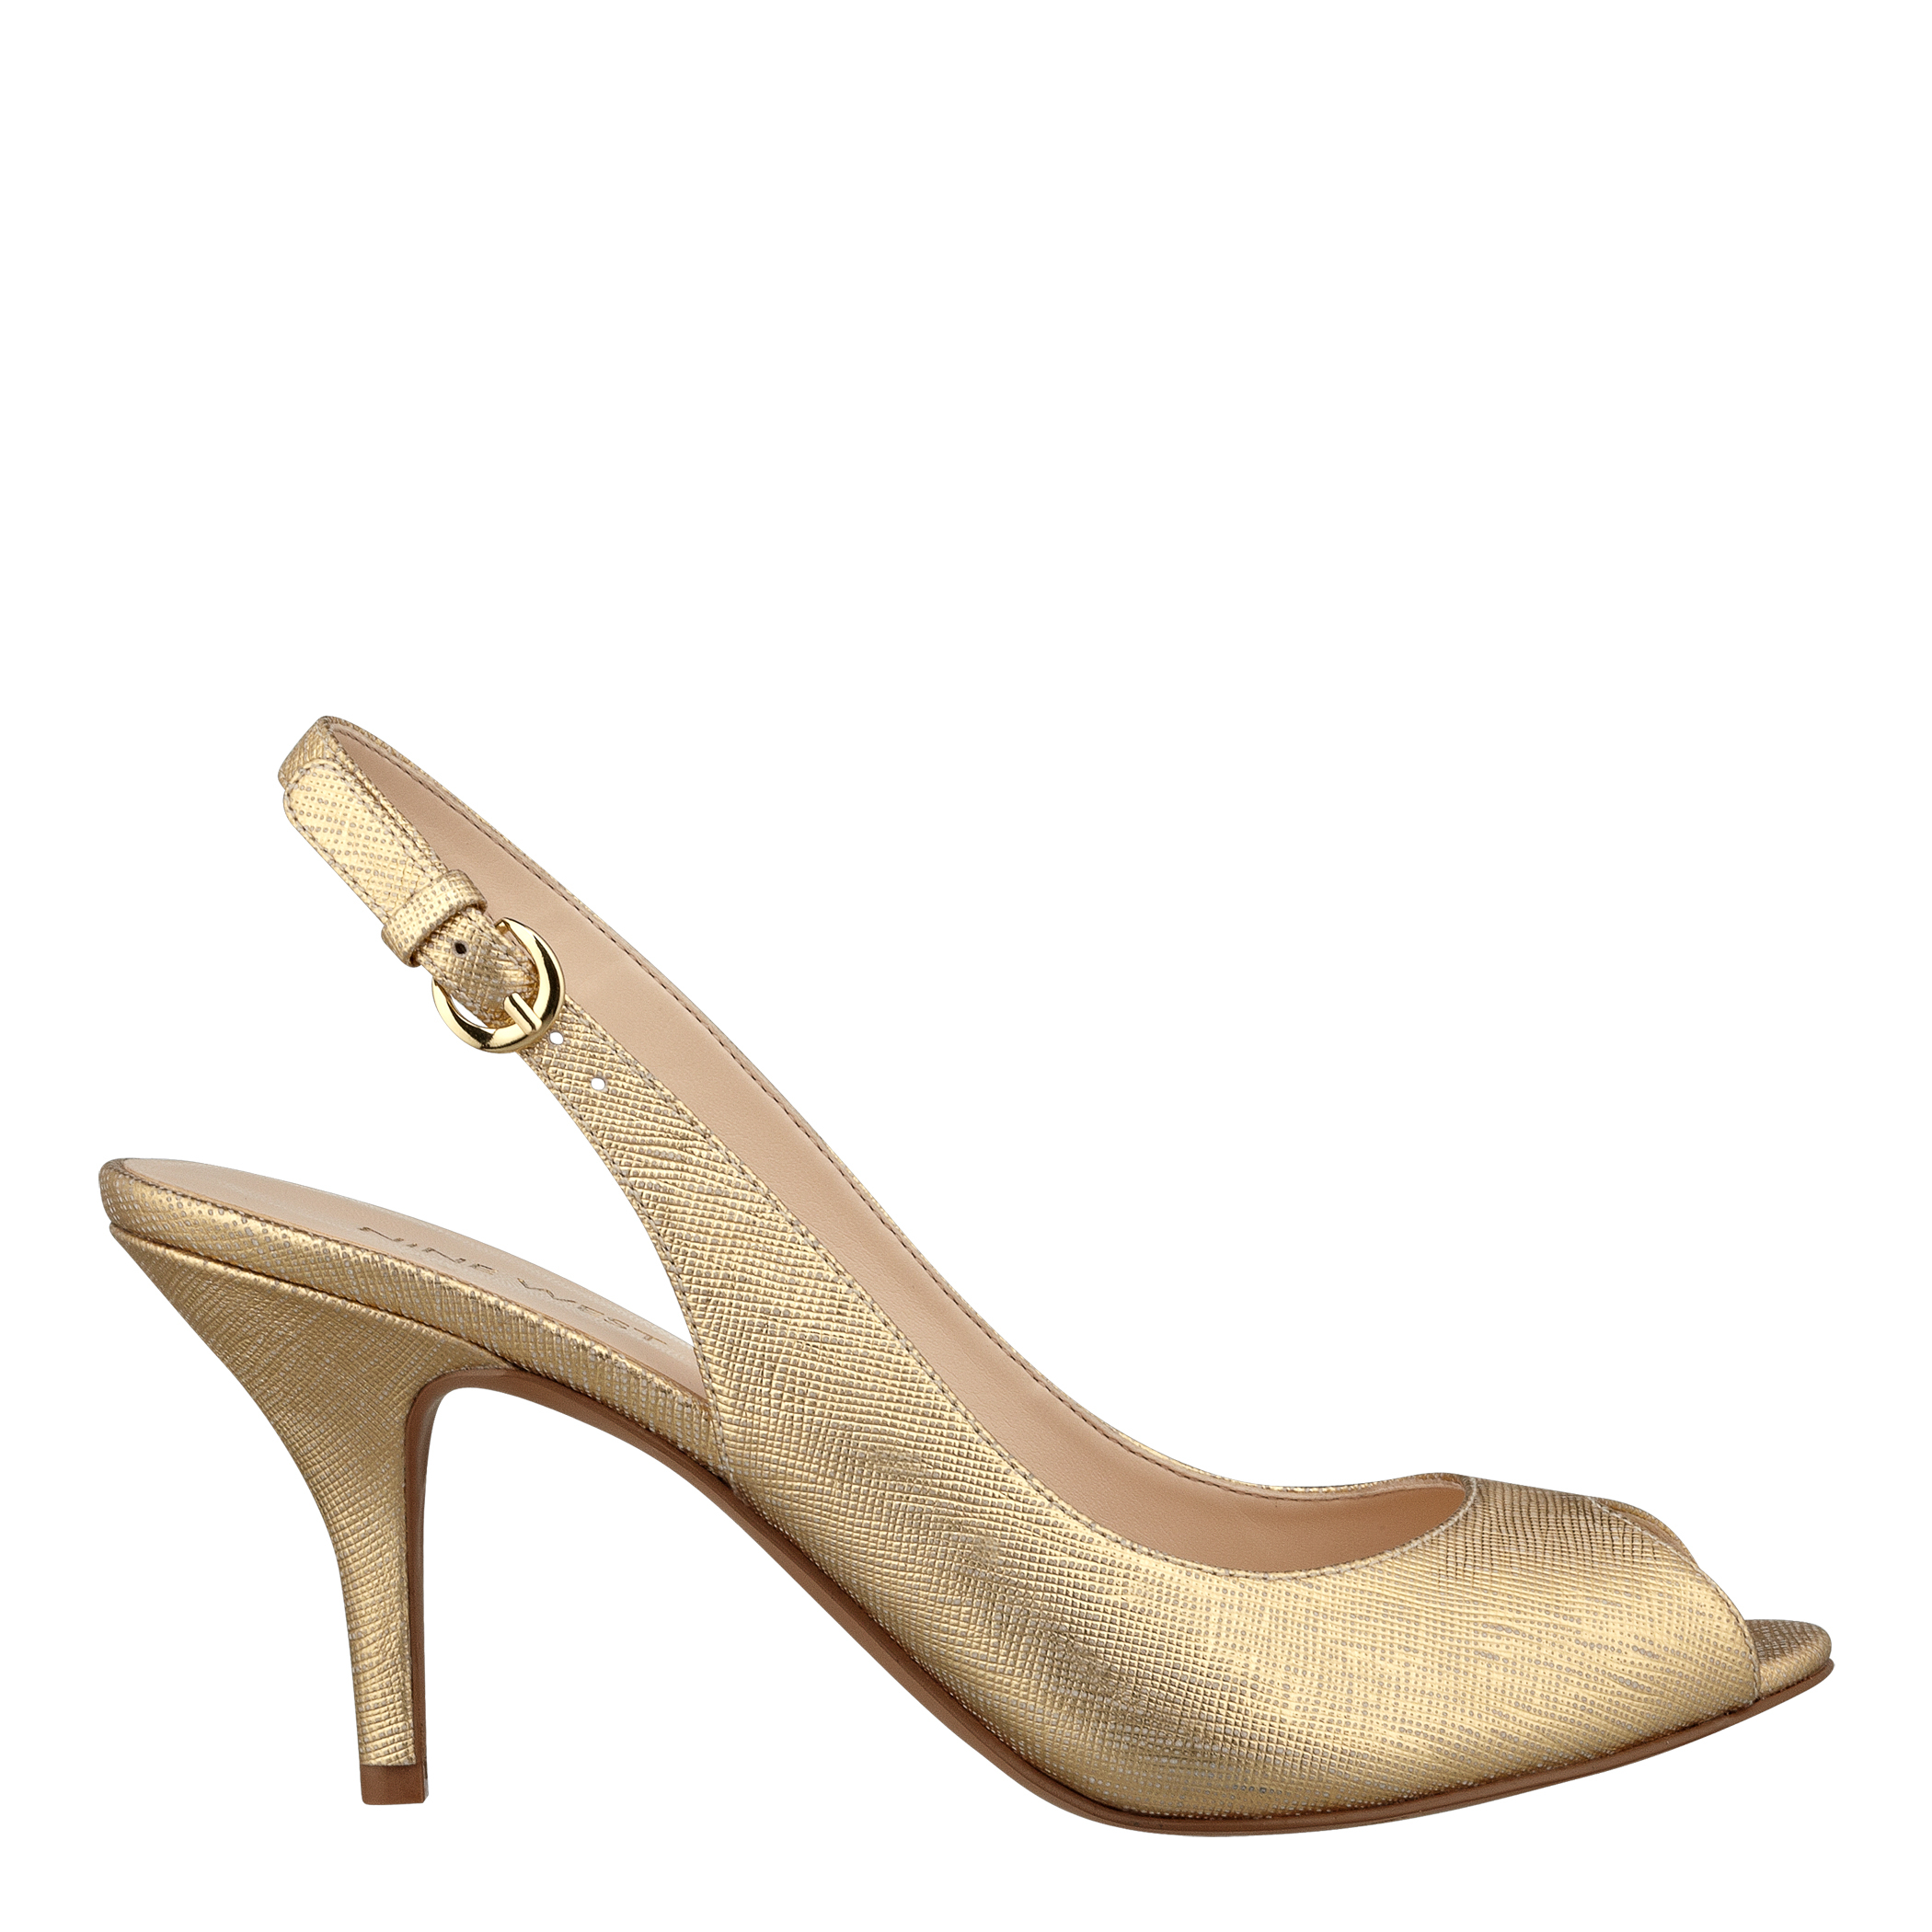 nine-west-gold-onpointe-peep-toe-slingback-pumps-product-1-19849284-5-208515235-normal.jpeg